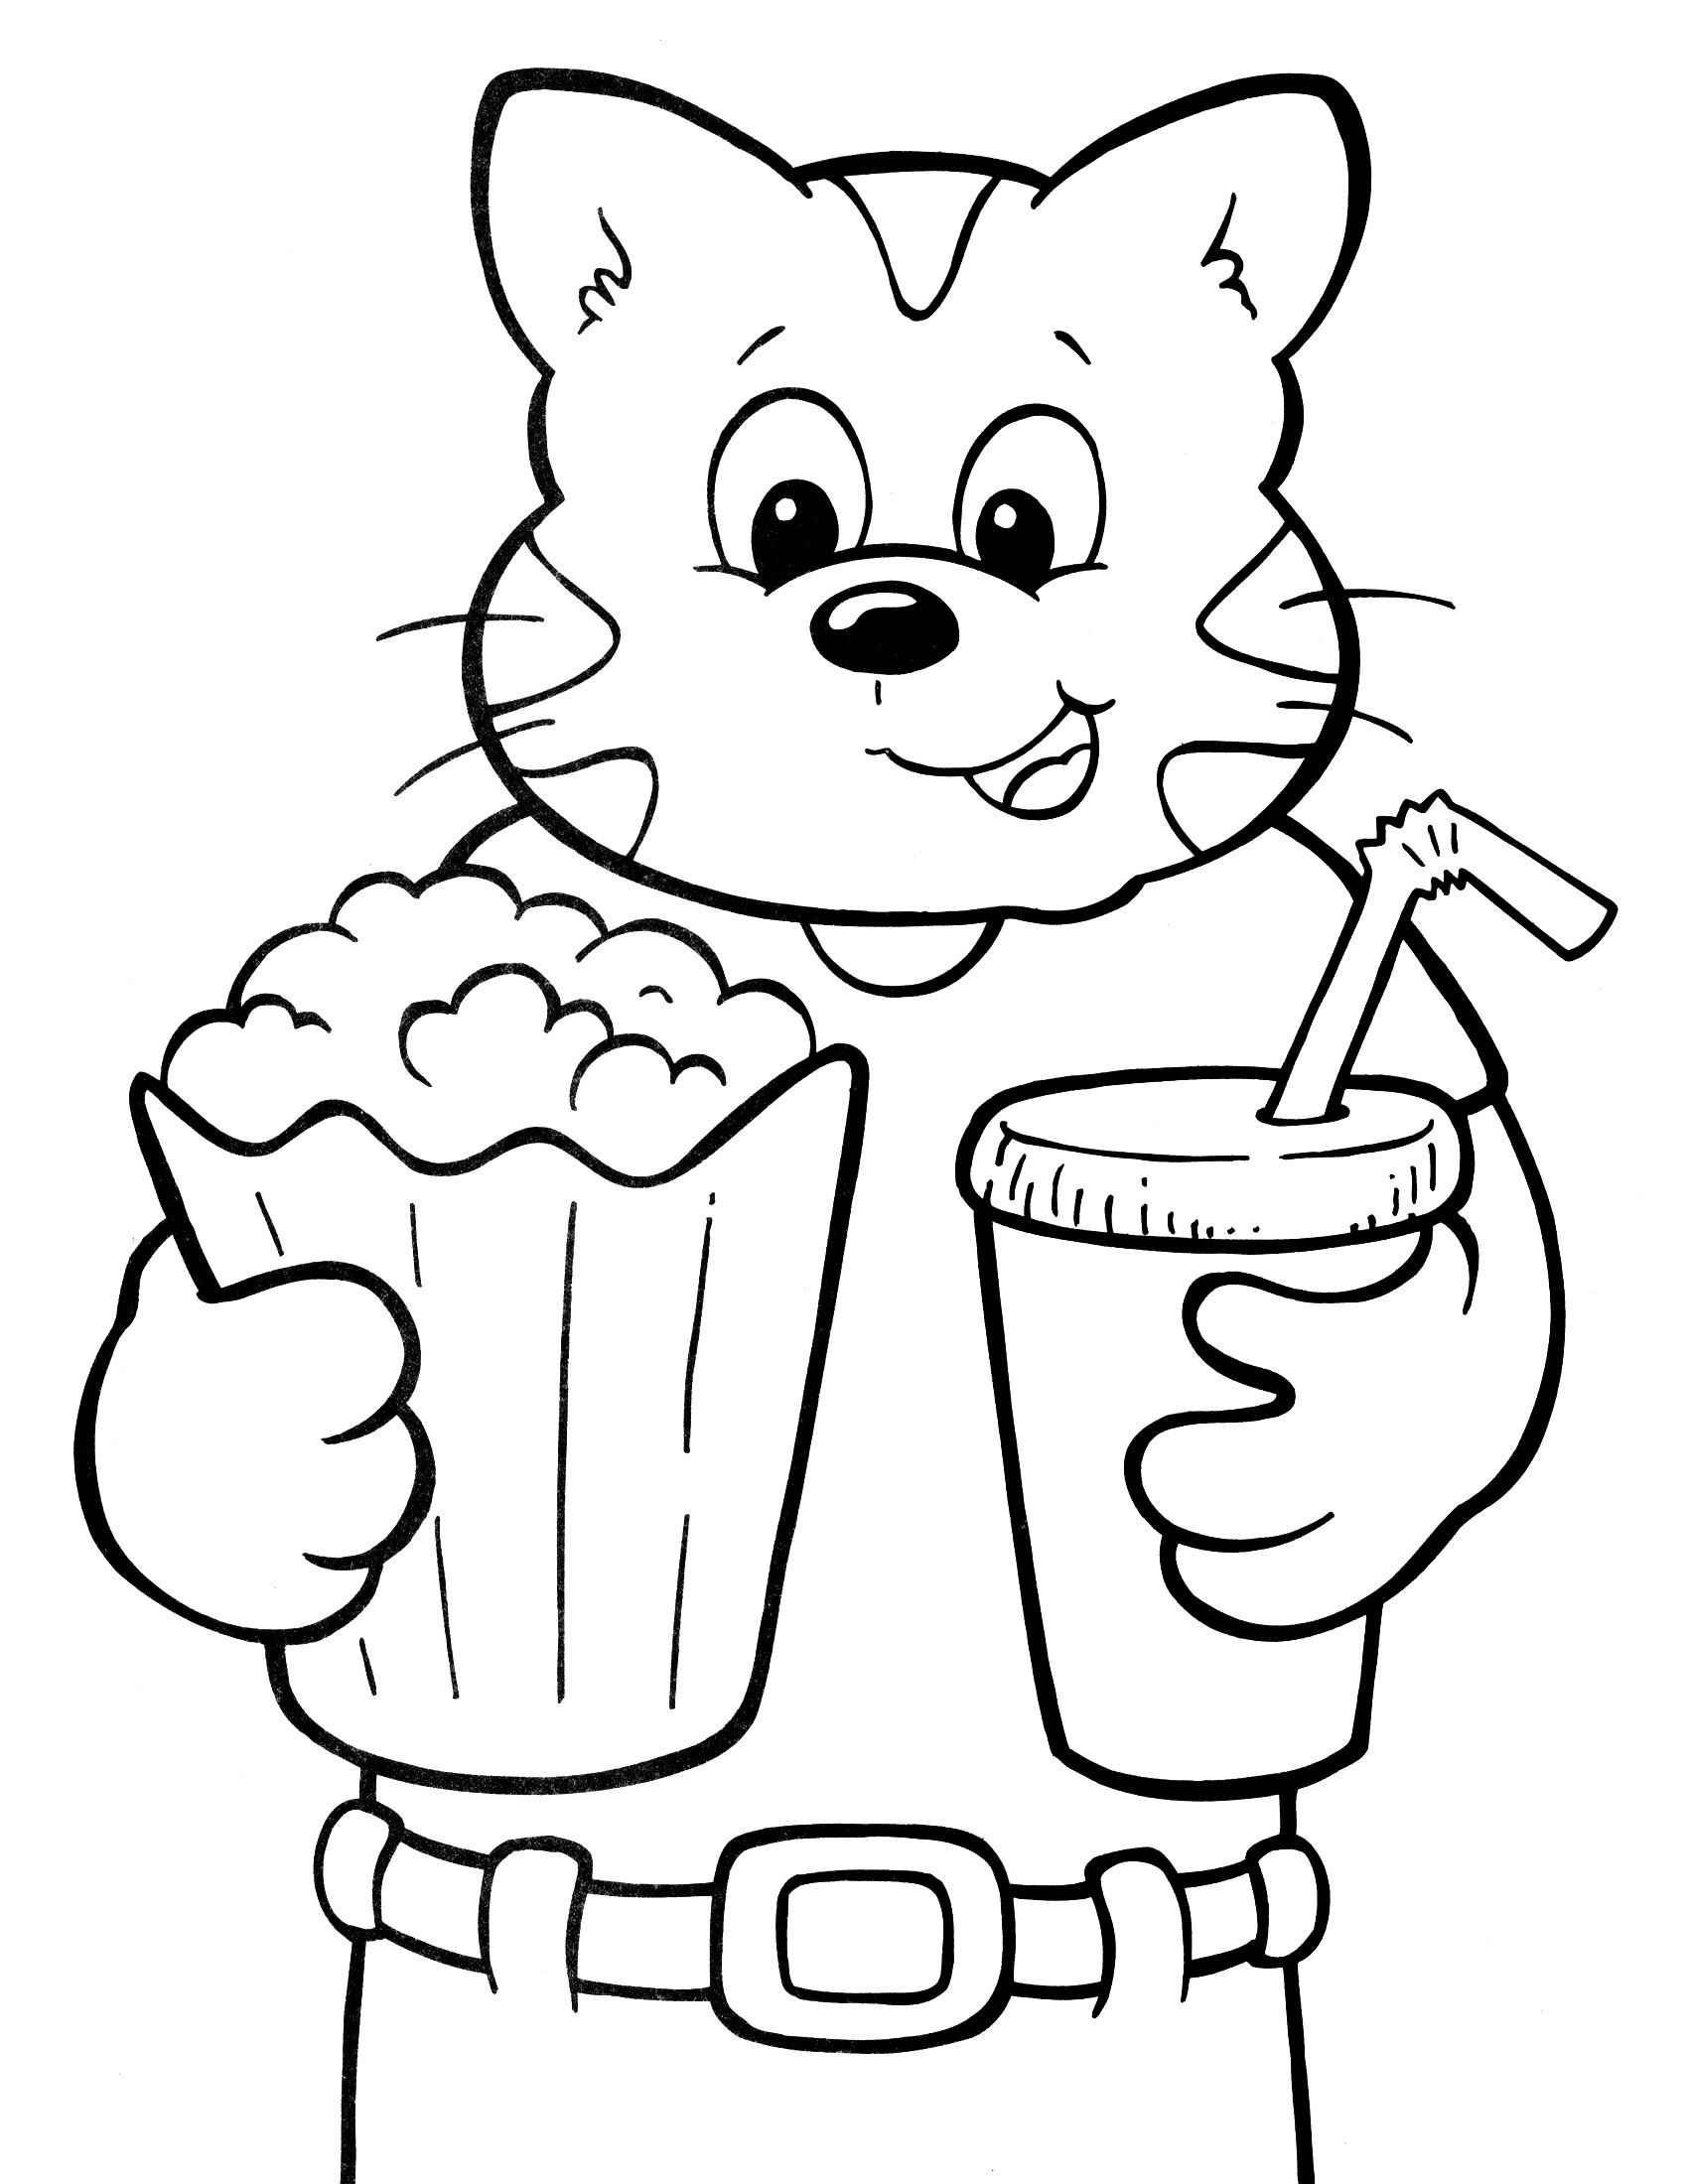 Crayola Coloring Pages For Kids Learning Printable Daily